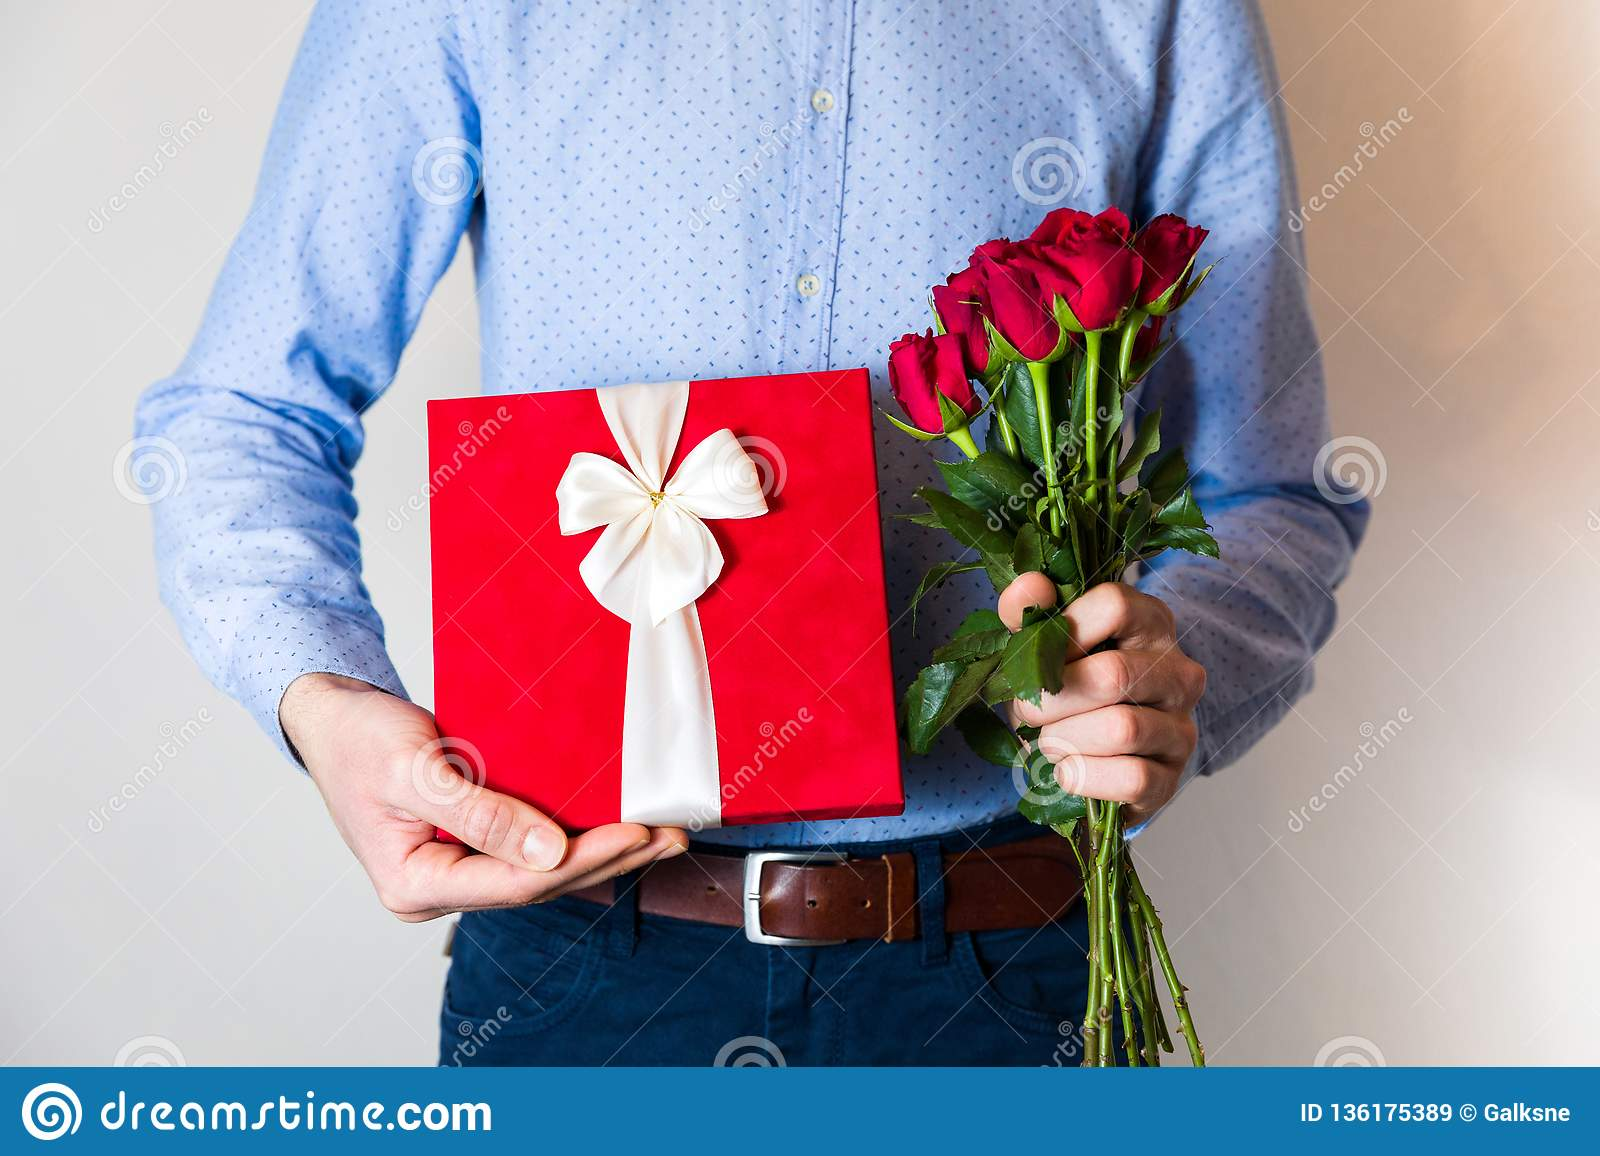 Valentines day surprise, love, handsome man holding romantic gift and red roses bouquet